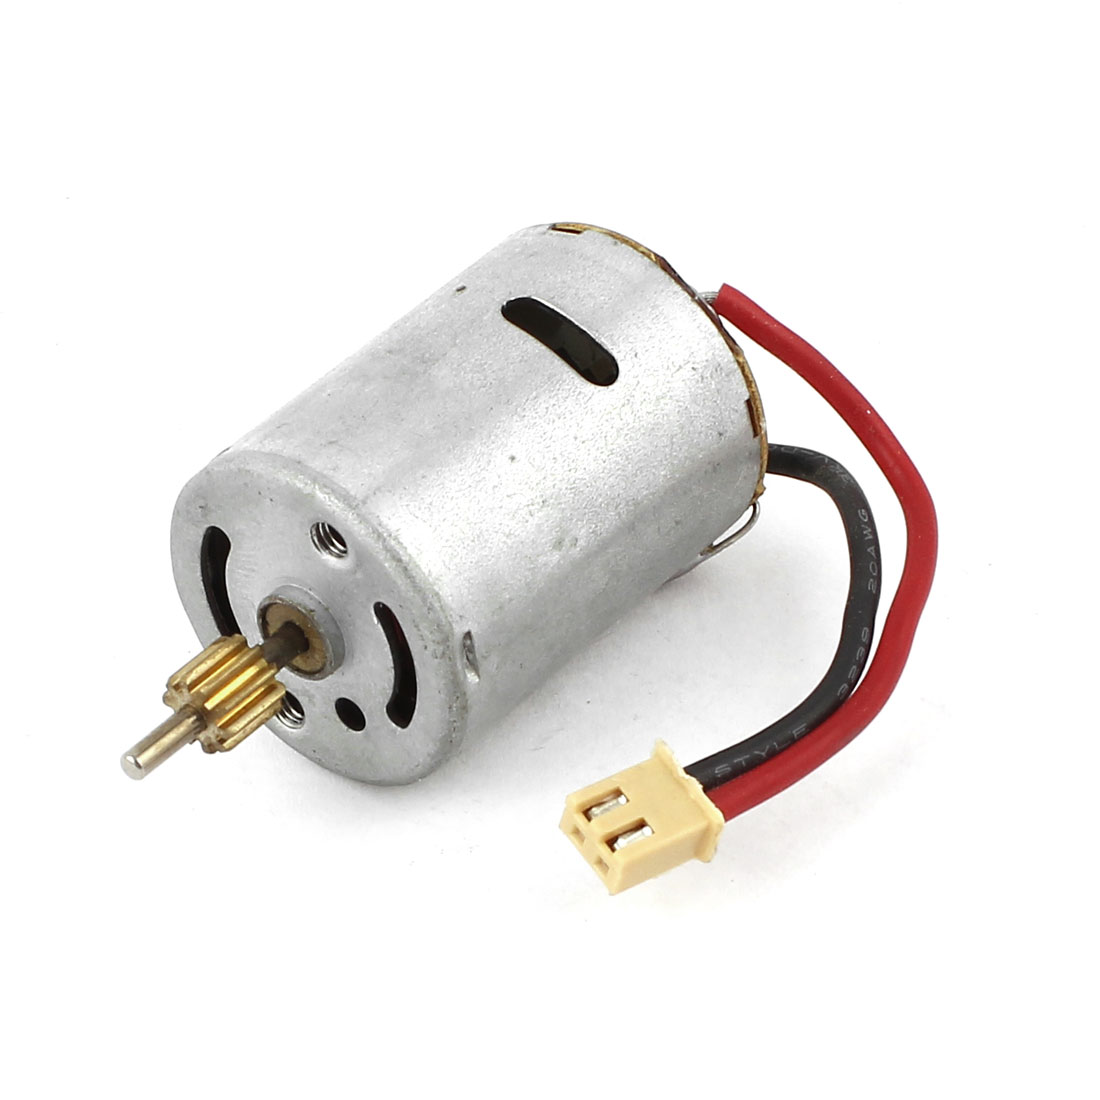 RC SY 8088 45/46 Airplane Replacement 28000RPM High Speed Front Motor DC 7.4V